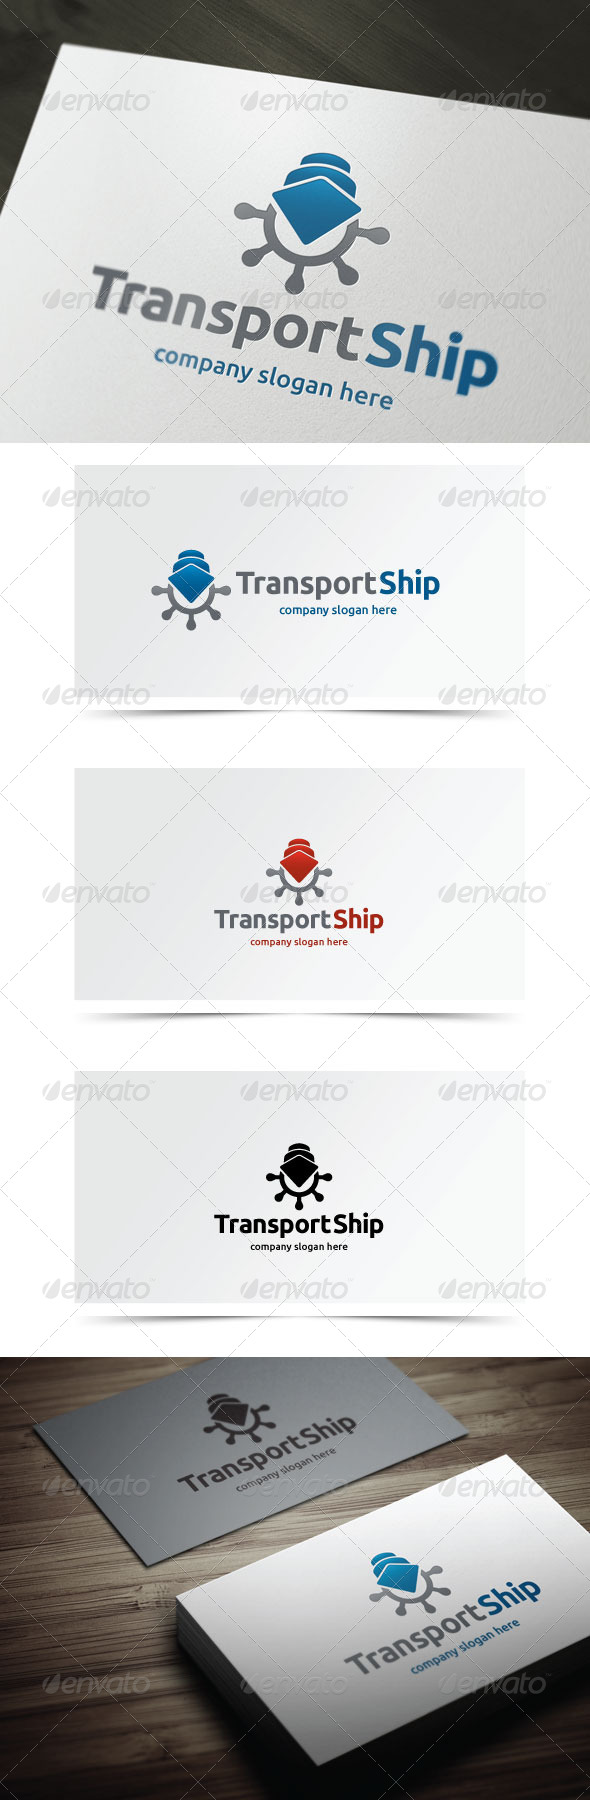 GraphicRiver Transport Ship 5958904